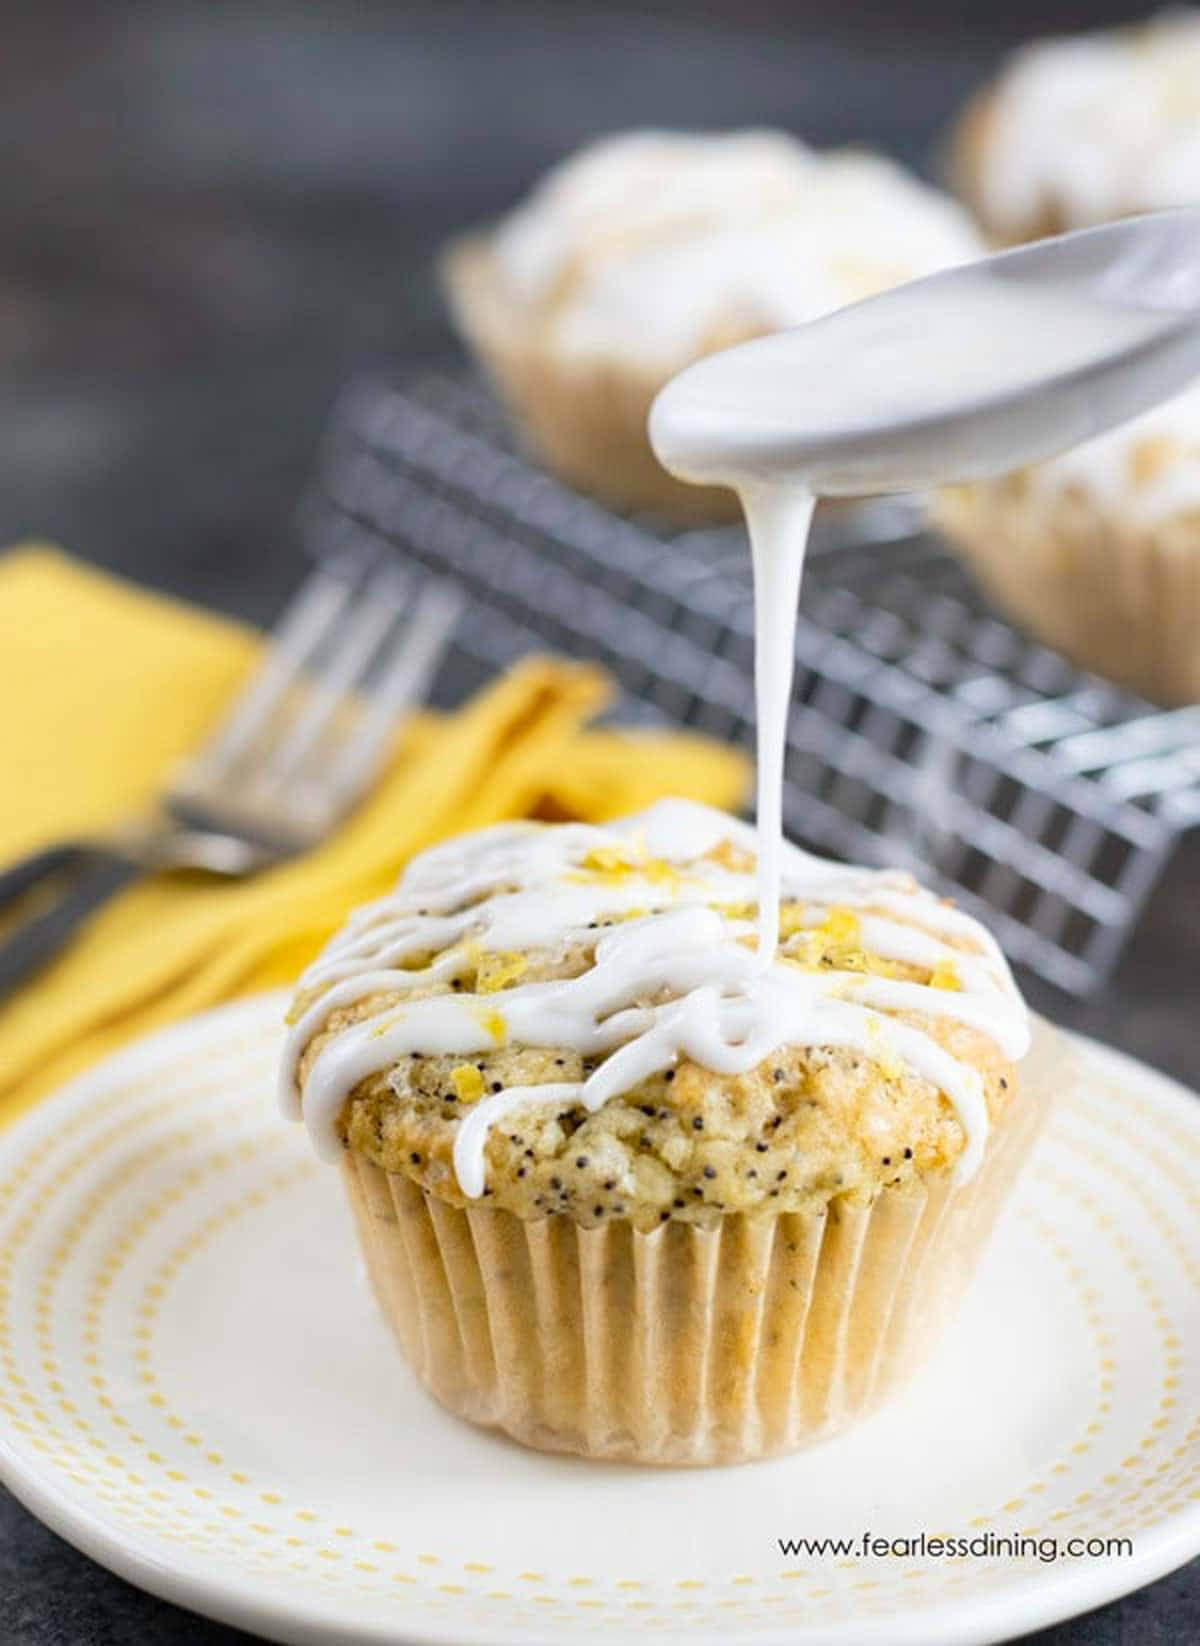 a spoon drizzling icing over a lemon poppy seed muffin